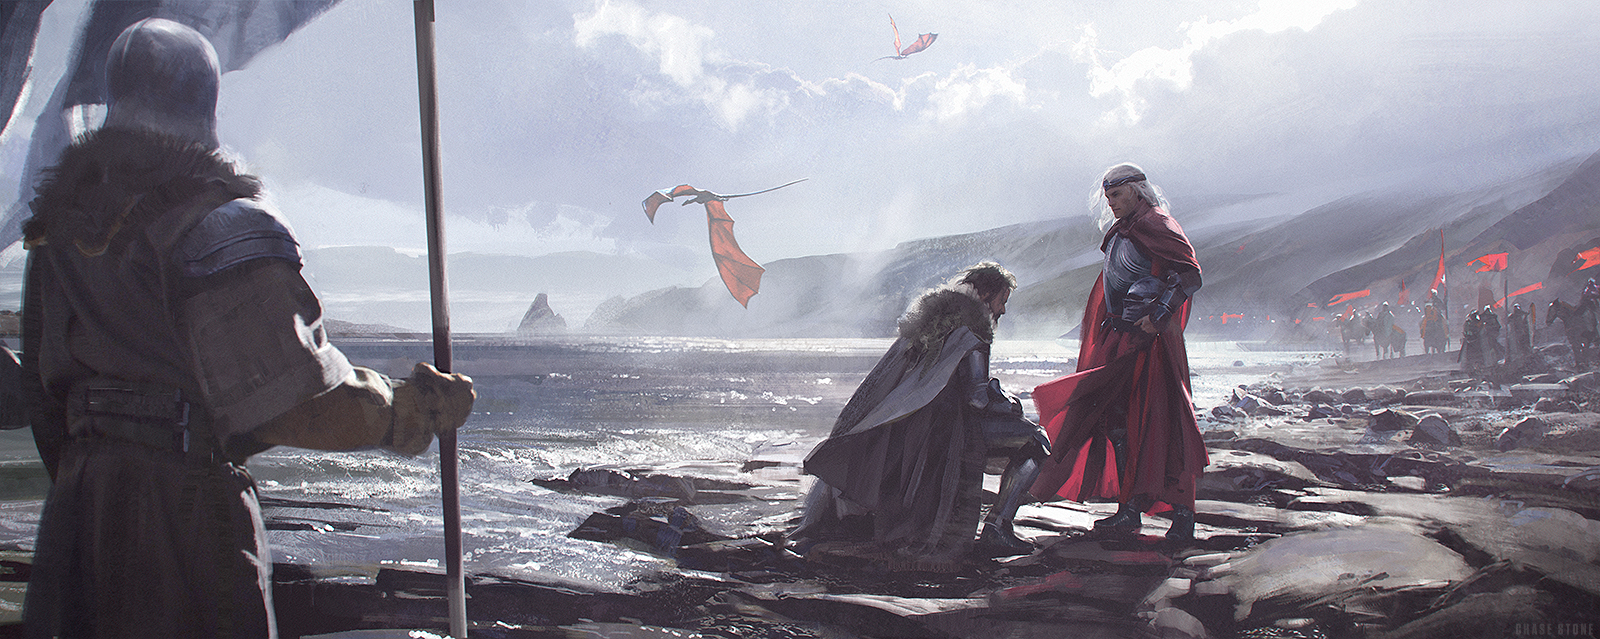 The King Who Knelt by chasestone